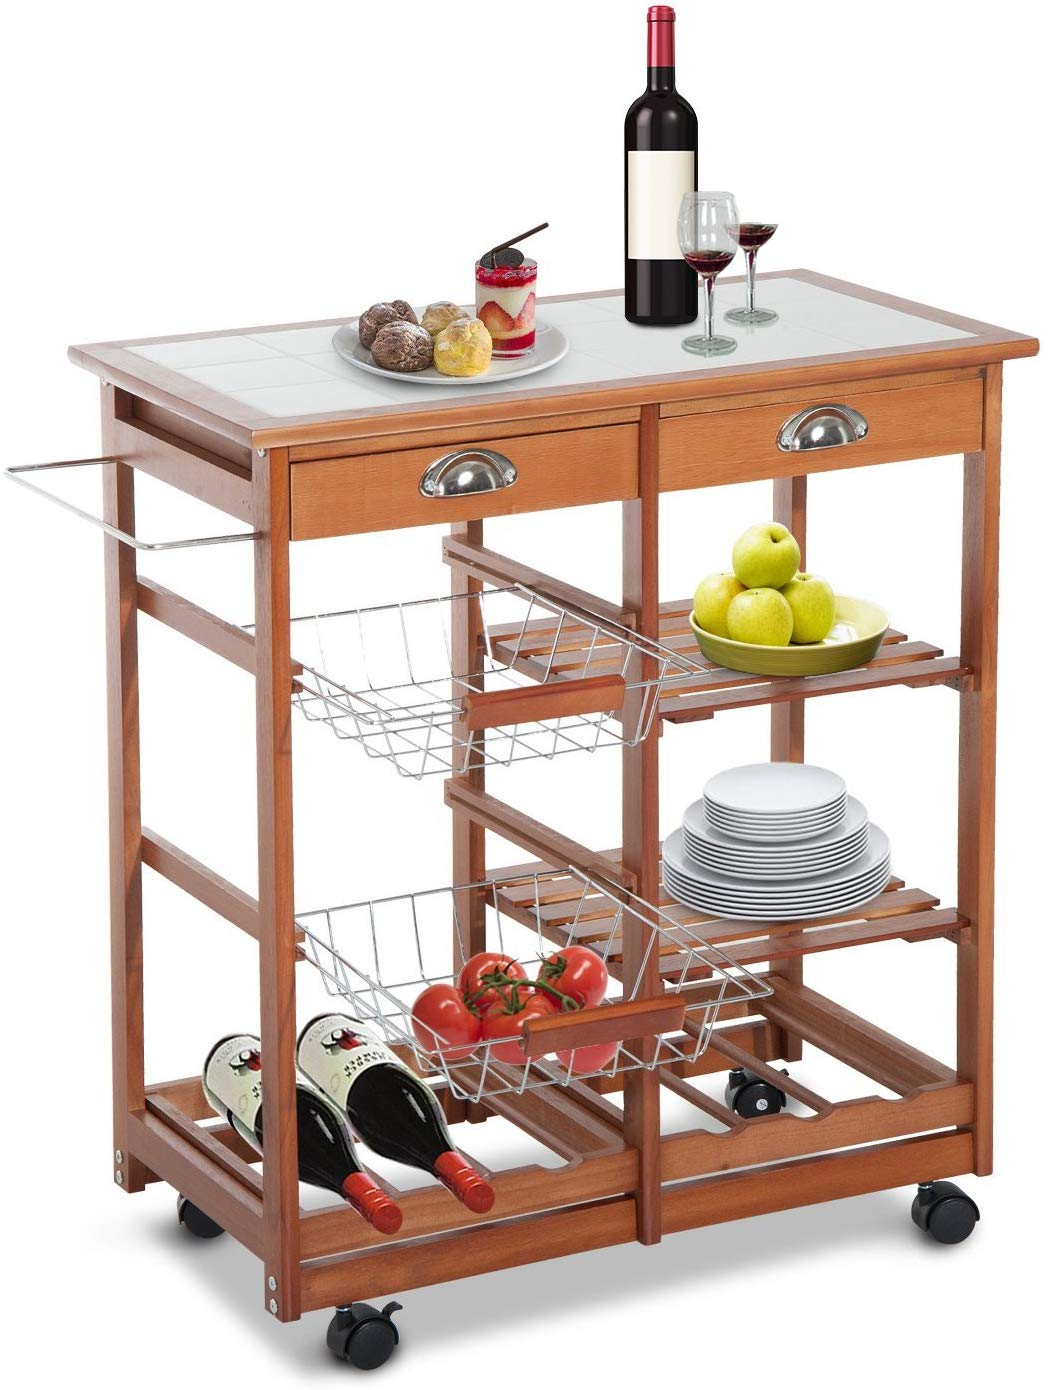 Hom com rolling tile top wooden kitchen trolley microwave cart